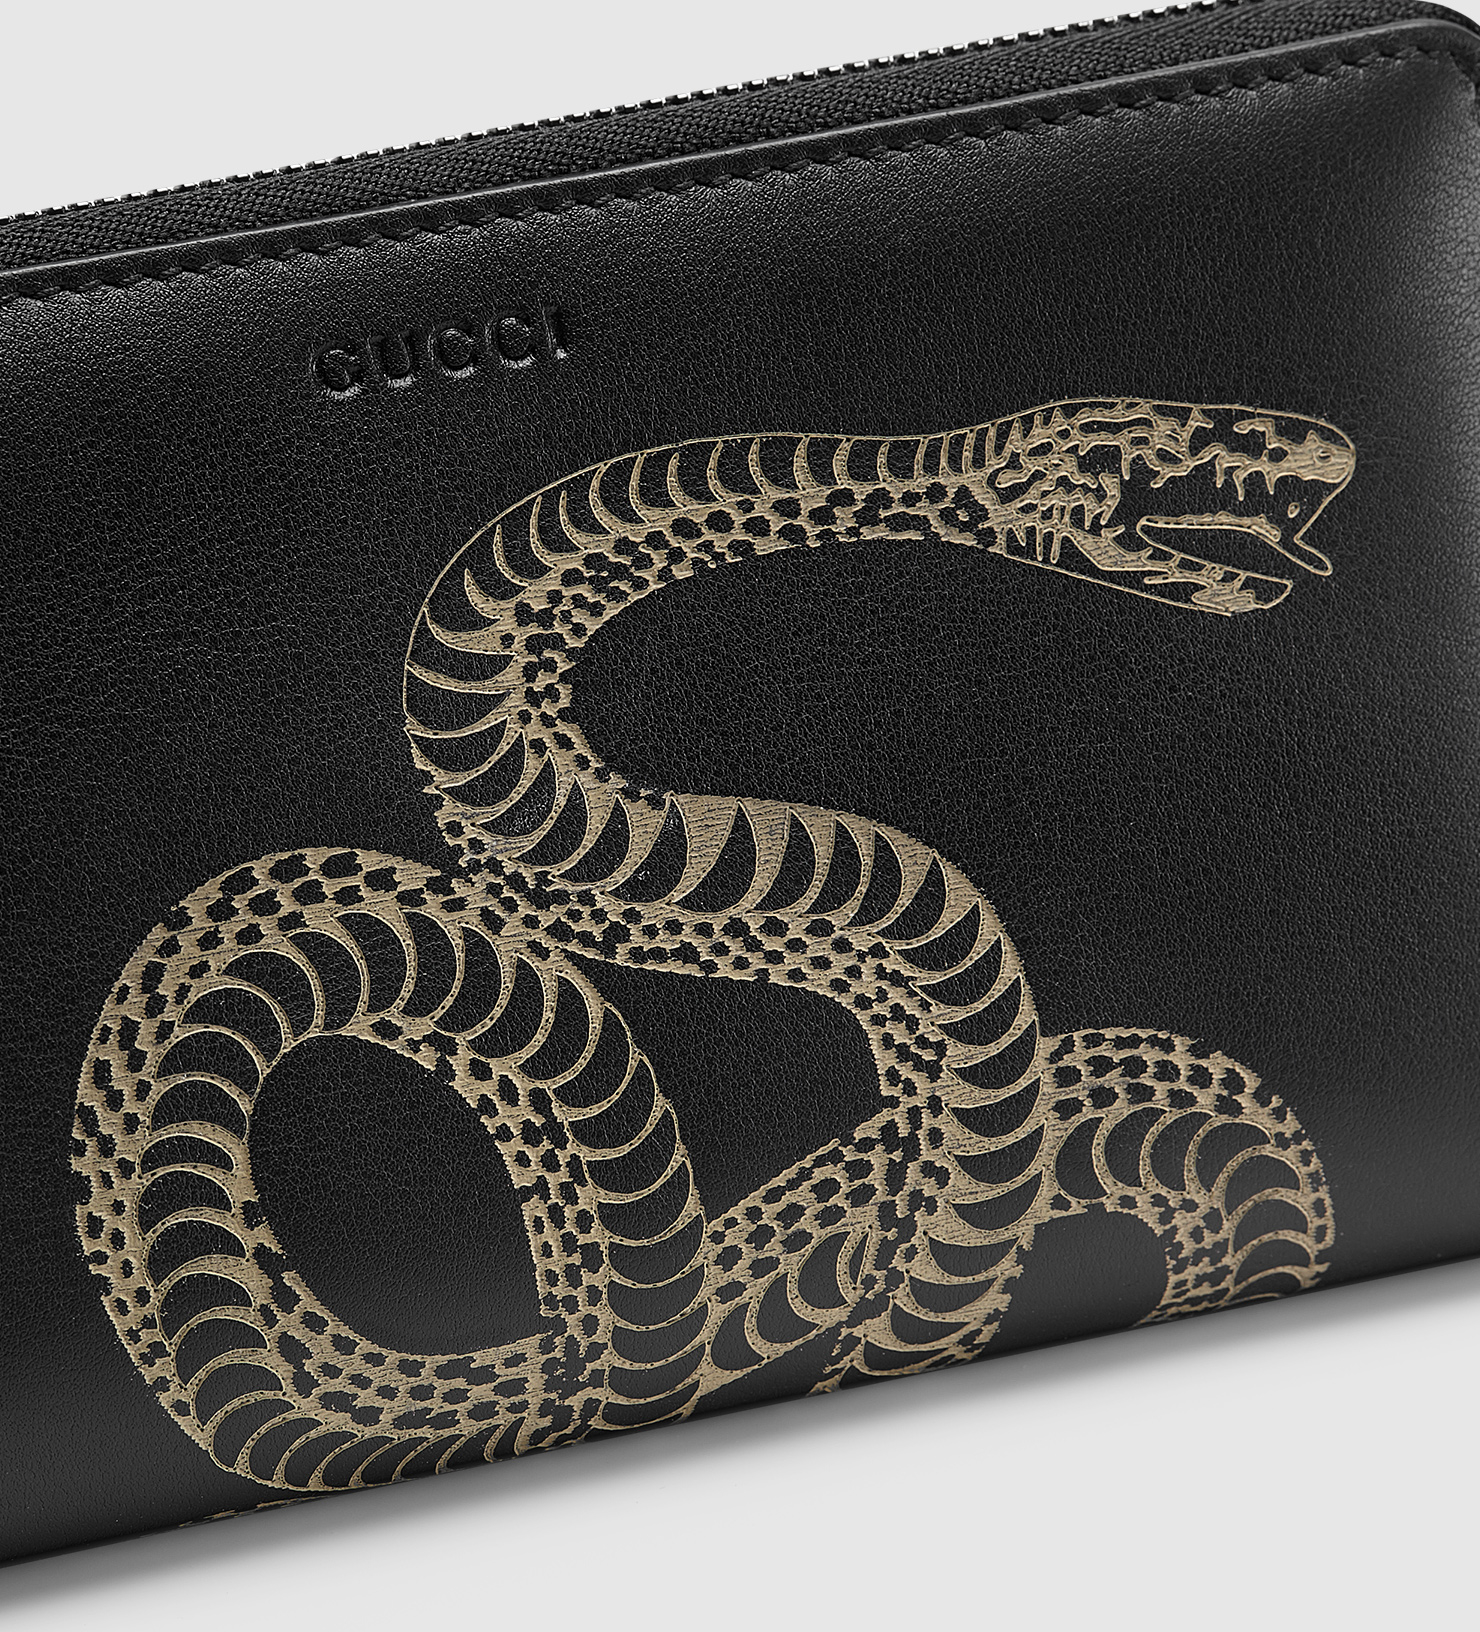 54652c3a26c Gucci Chain Wallet For Men - Best Photo Wallet Justiceforkenny.Org